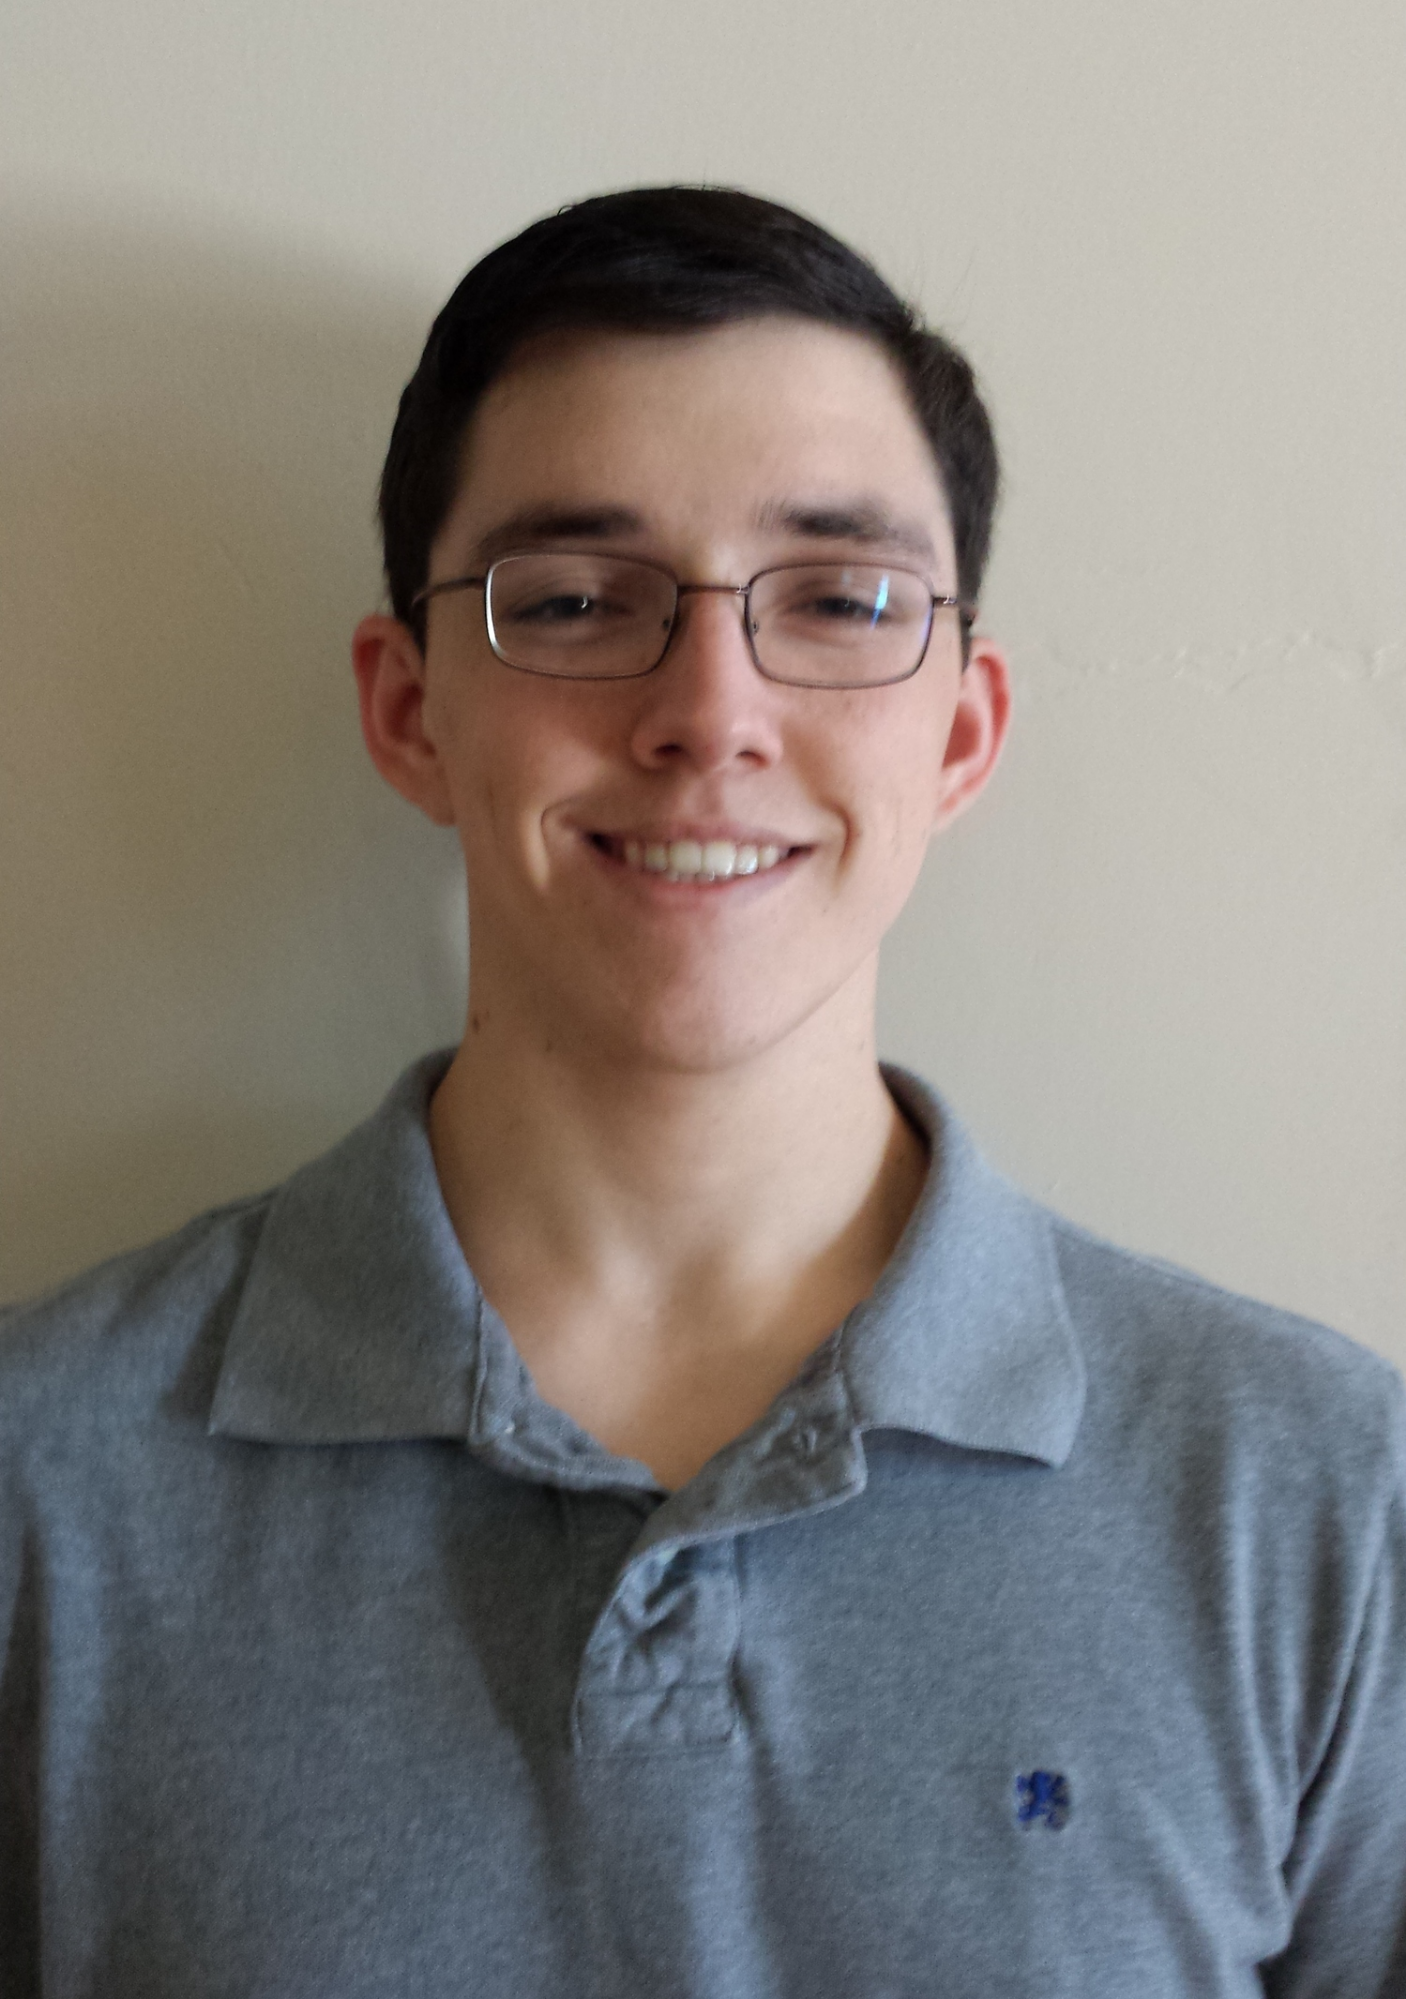 Grayson regularlyattends general council meetings which he is not required to go to and is an extremely active member of the engineering council. I am truly impressed with his dedication and spirit in general council. His work and efforts do not go unnoticed. Thank you Grayson!